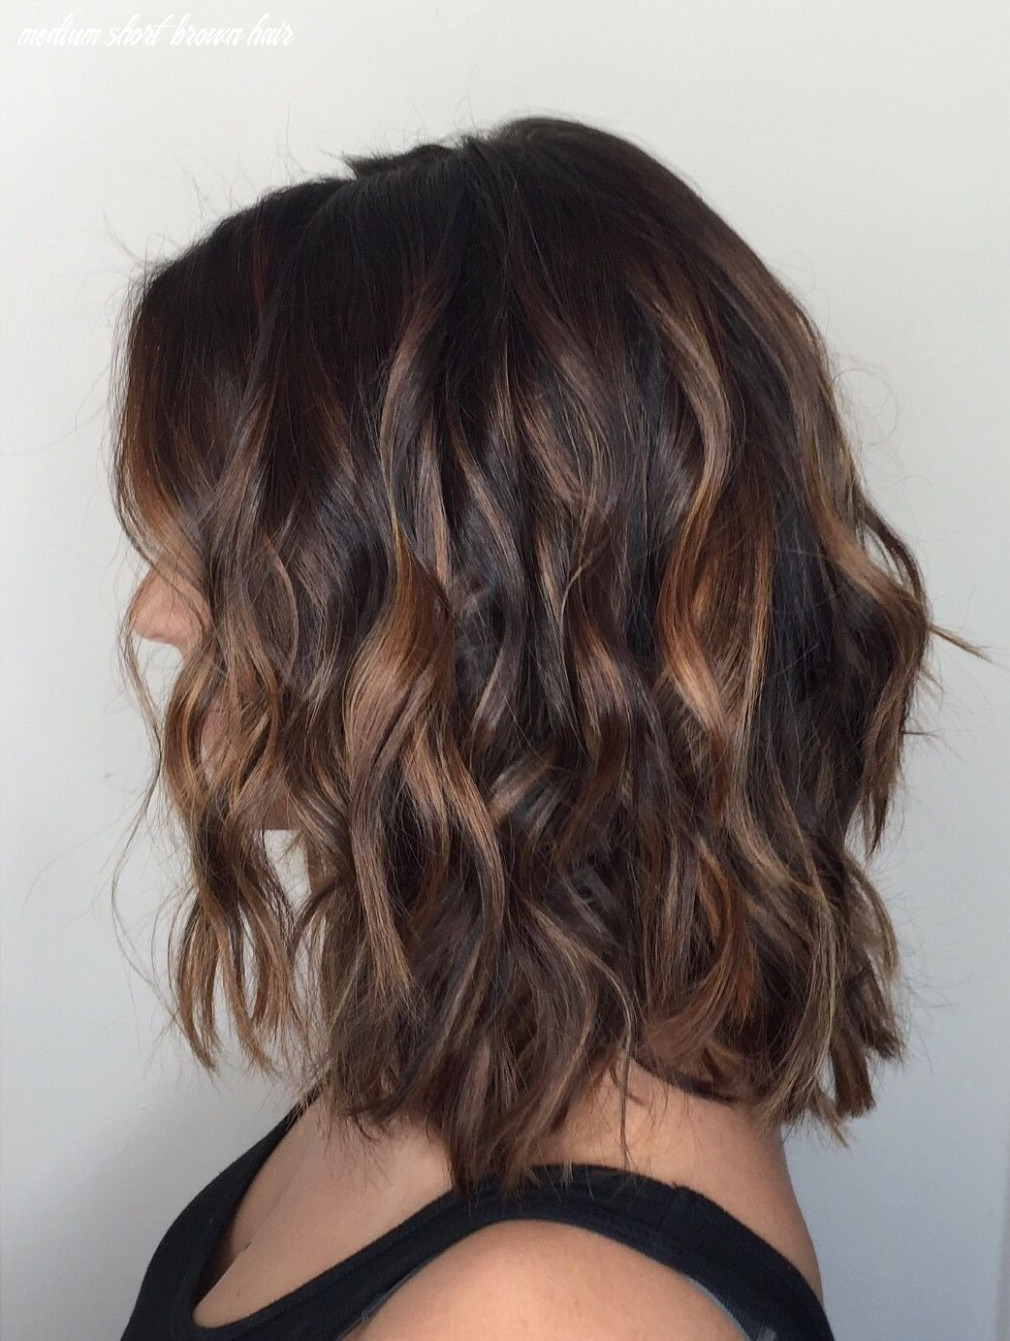 8 look for balayage short hairstyle (with images) | short hair